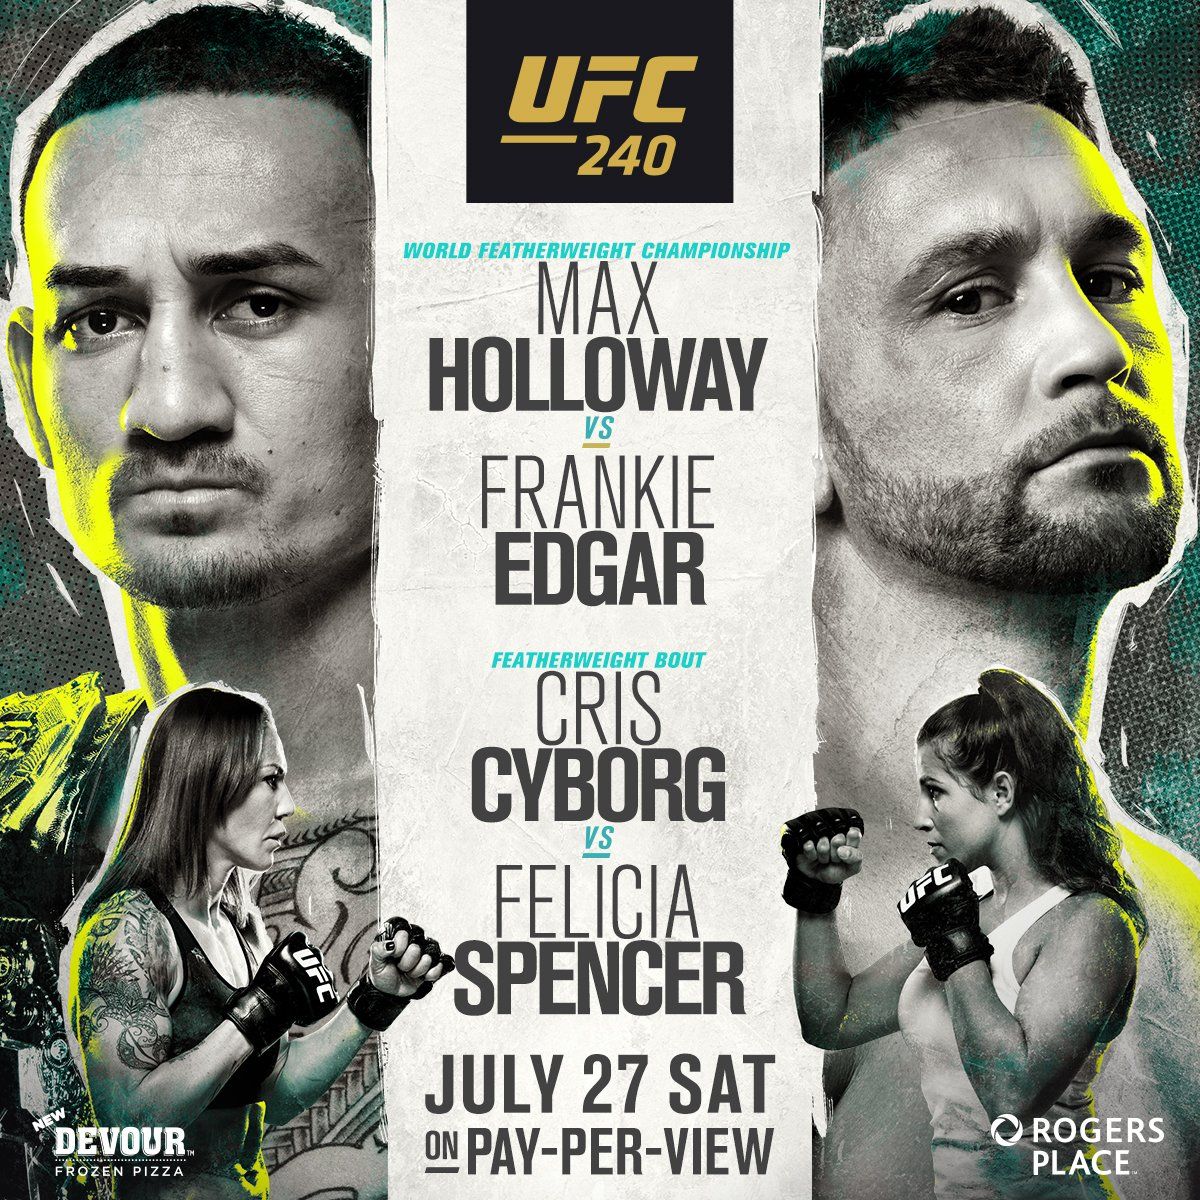 #UFC239 FIGHT: #HollowayVSEdgar #CyborgVSSpencer & MORE ON JULY 27, 2019! Order this event for your bar or restaurant here: http://ow.ly/pvLy30mvhxz